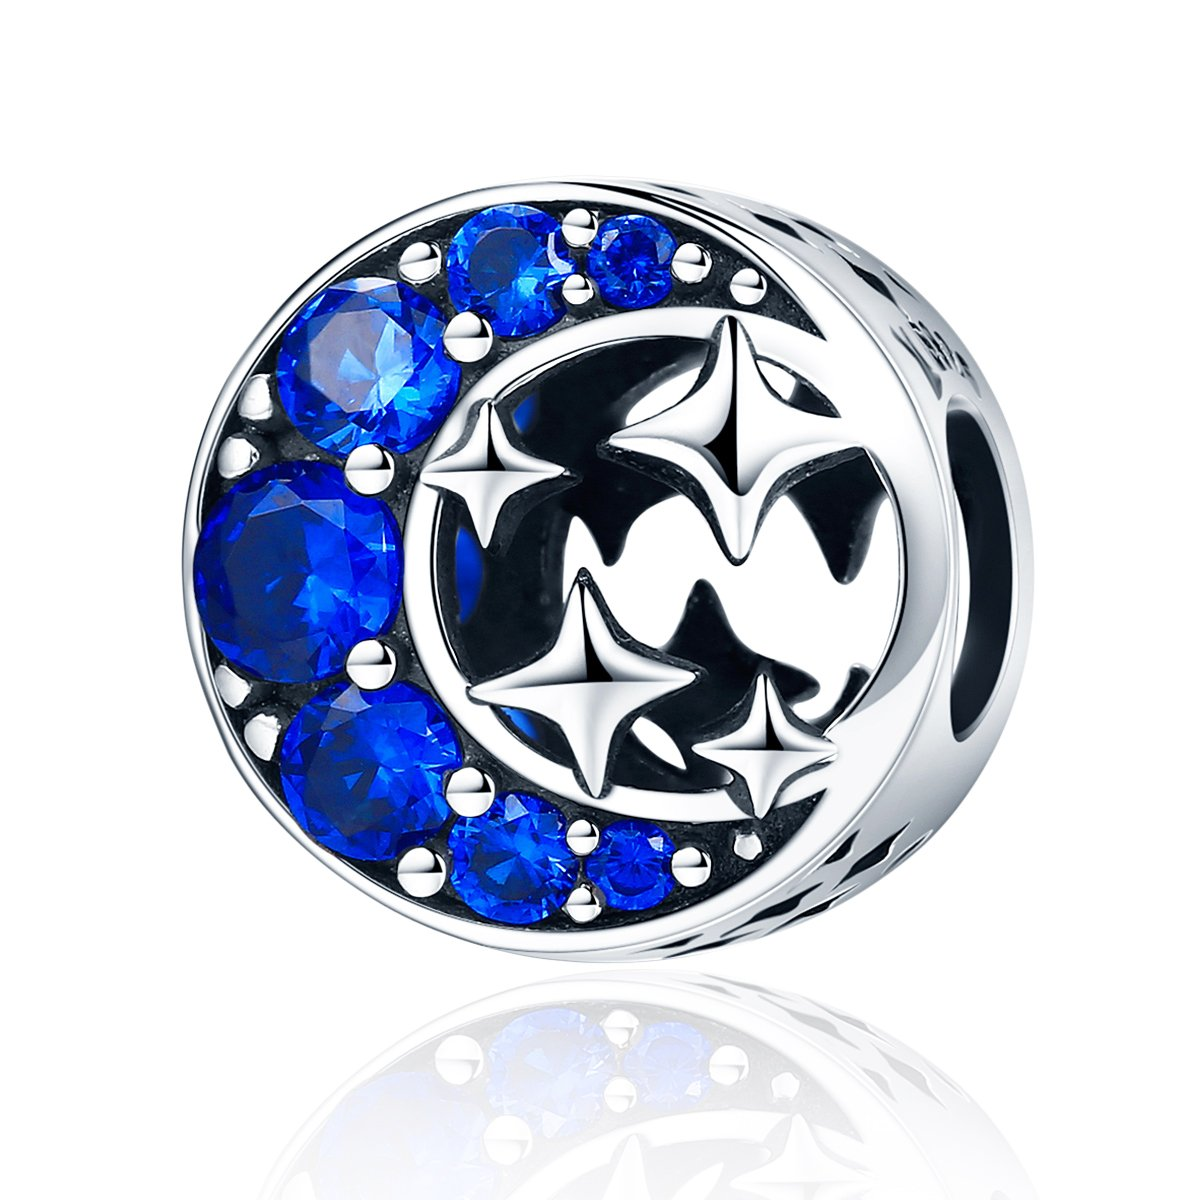 WOSTU Luxury Moon and Star Charms Sterling Silver Cunic Zirconia Beads for Charm Bracelets